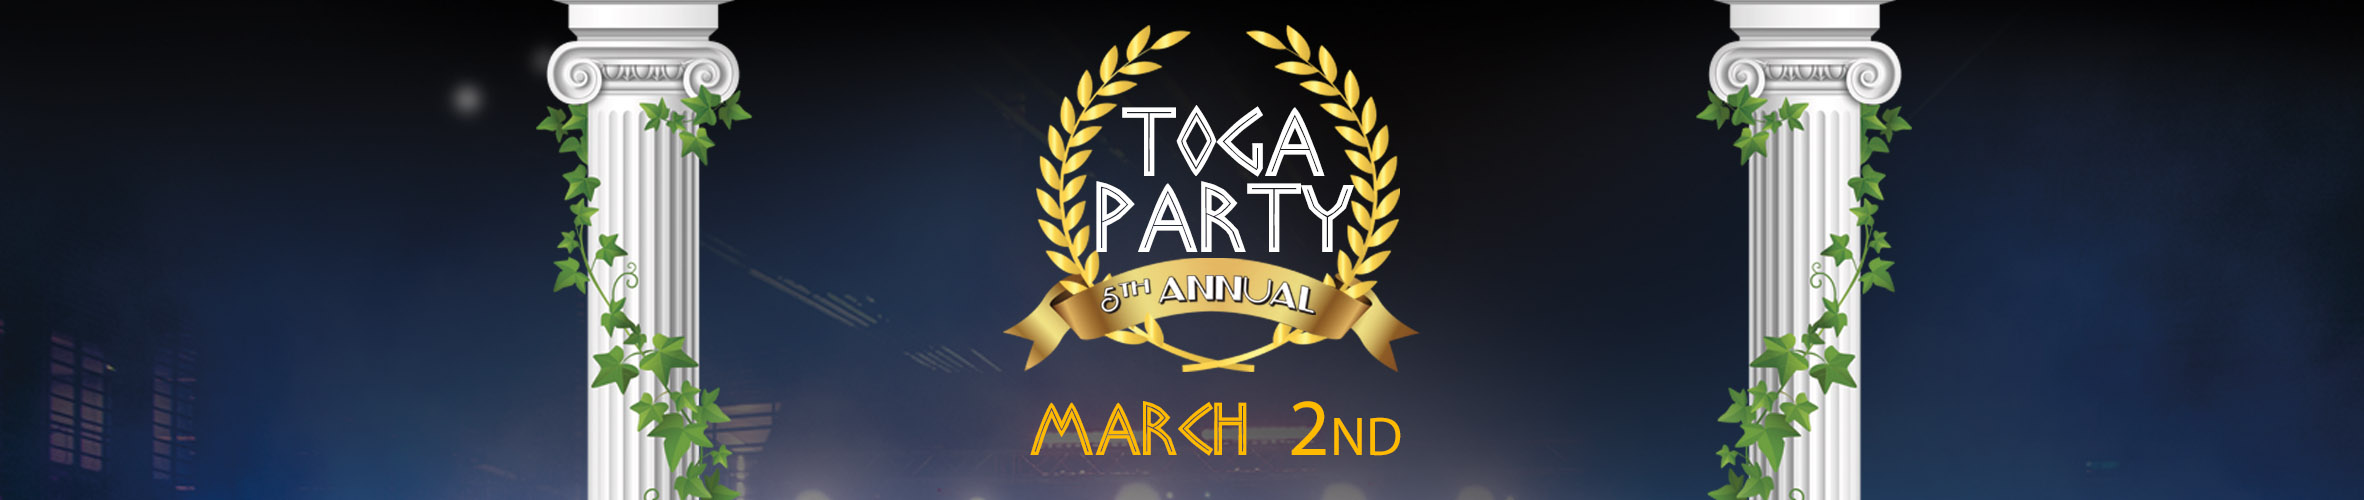 Toga Party Banner